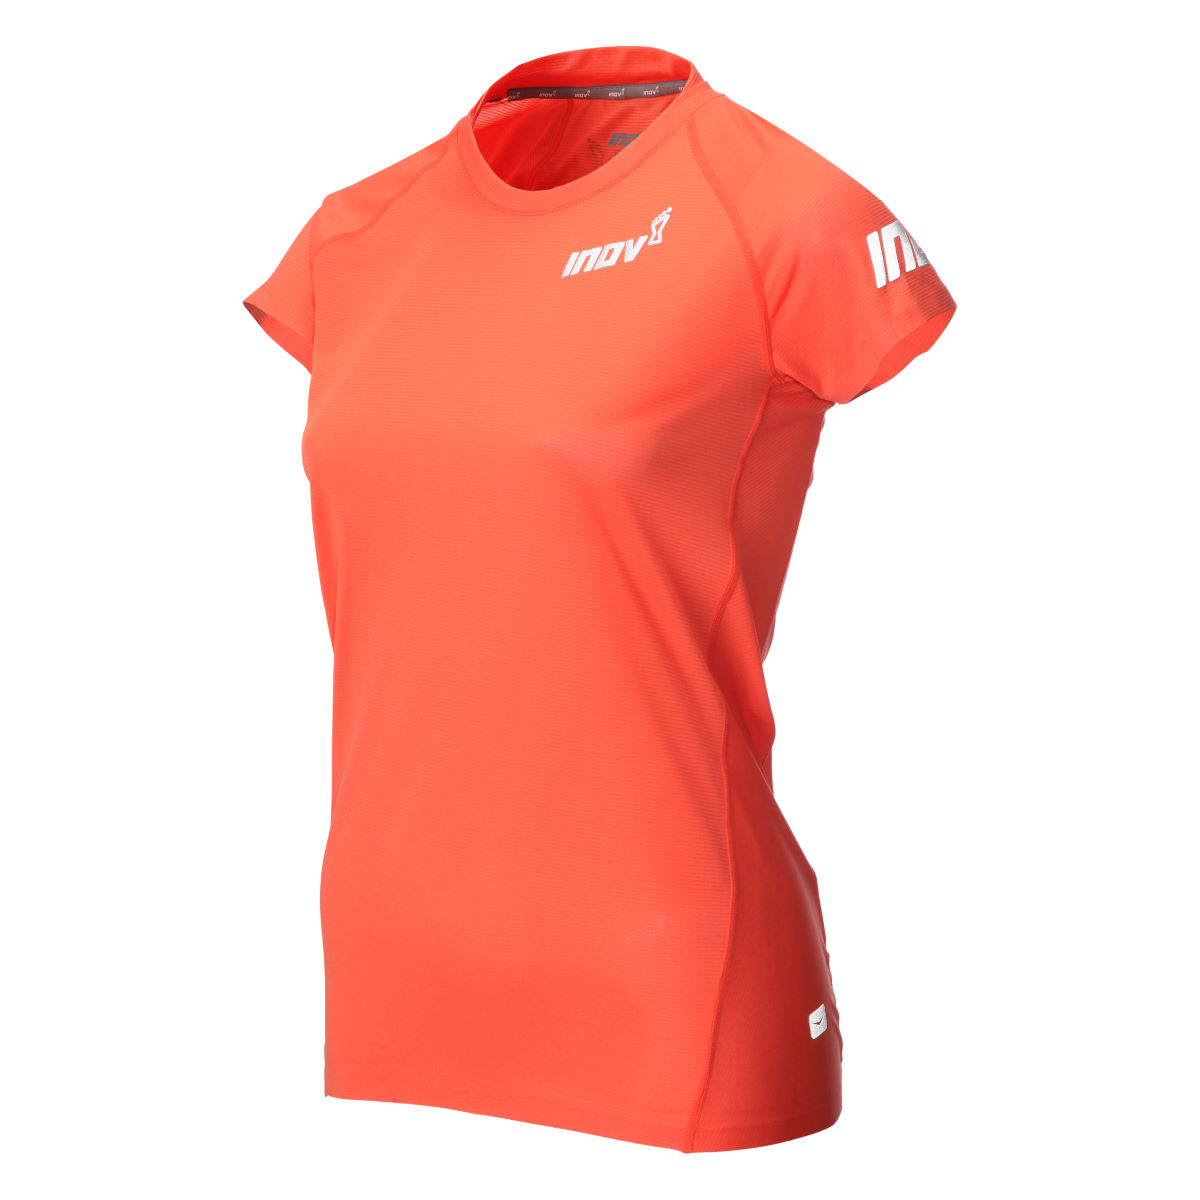 Maillot de corps Femme Inov-8 AT/C (manches courtes) - XS Coral